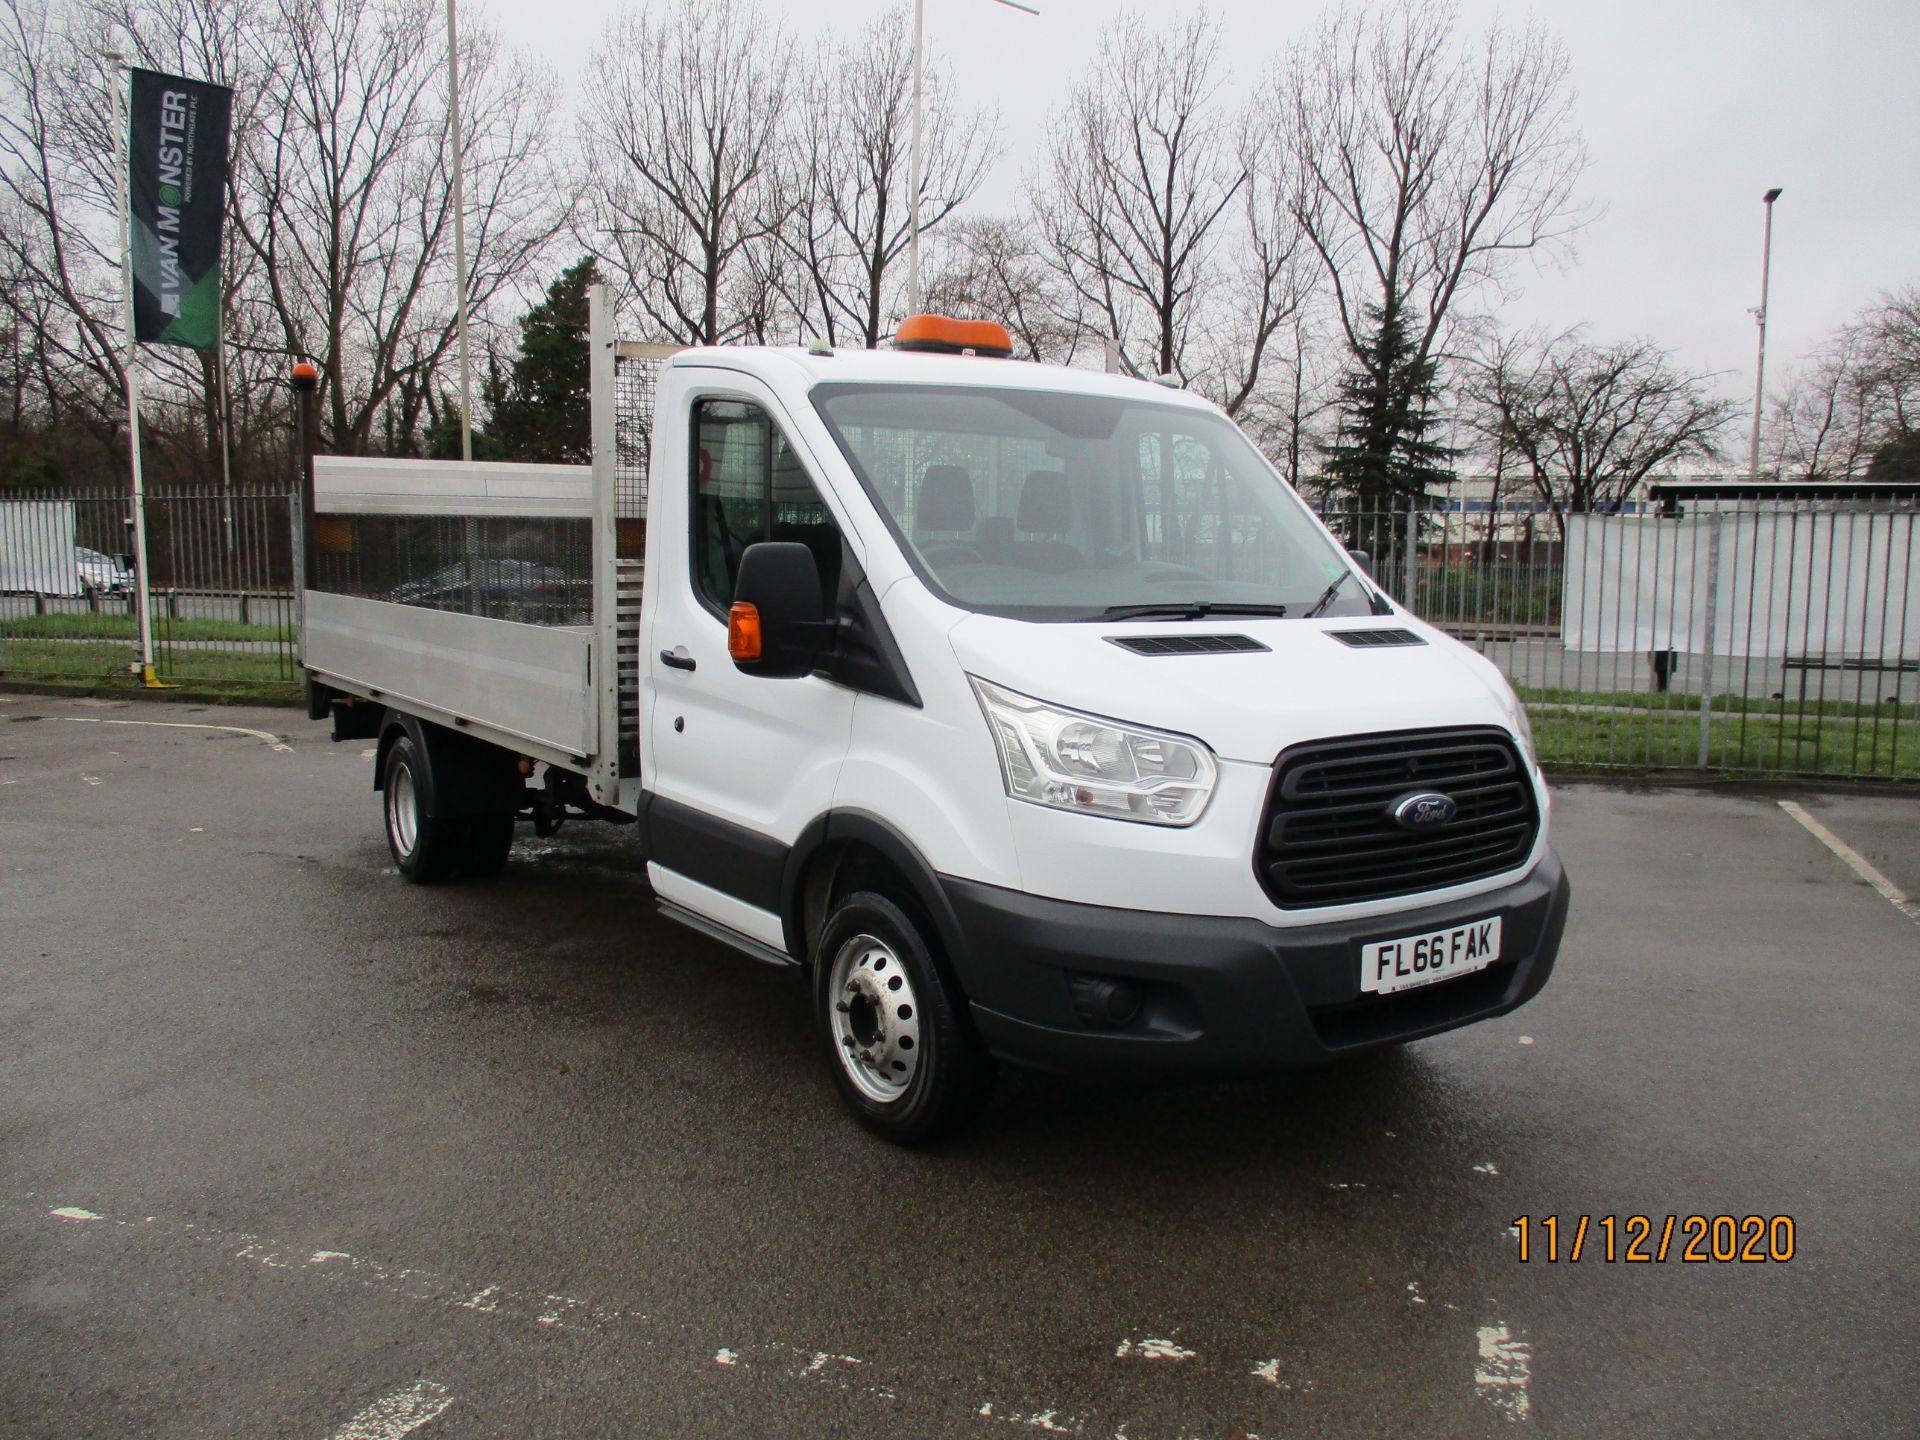 2016 Ford Transit 2.2 Tdci 125Ps Chassis Cab (FL66FAK) Image 1